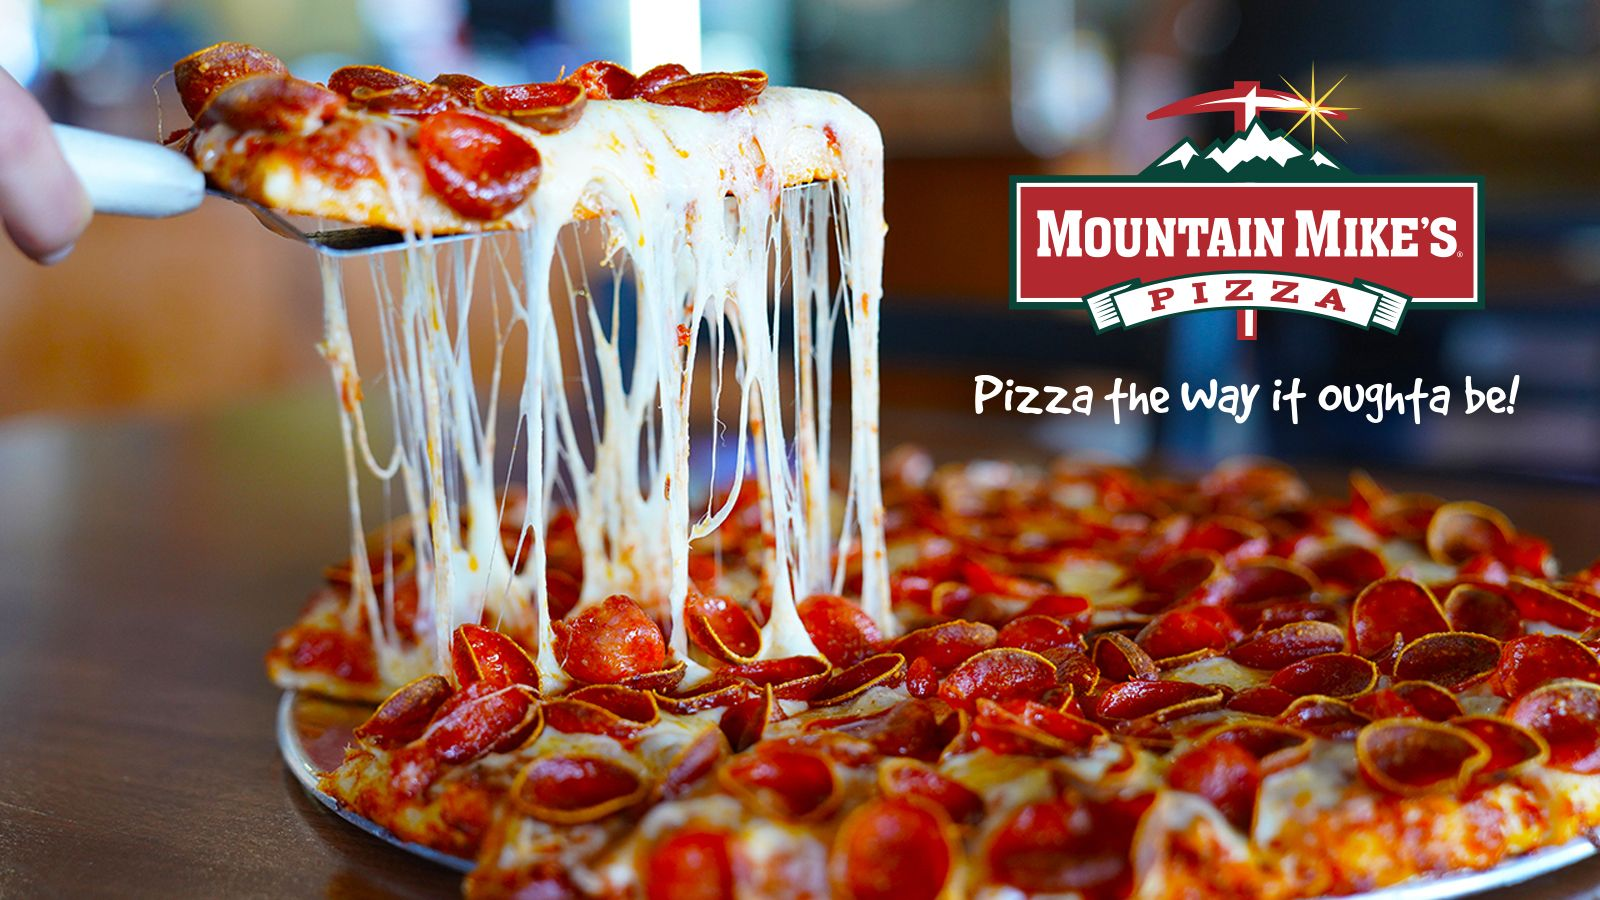 Mountain Mike's Continues to Reach New Heights in 2021 as Q2 Same Store Sales Rise 16.4%